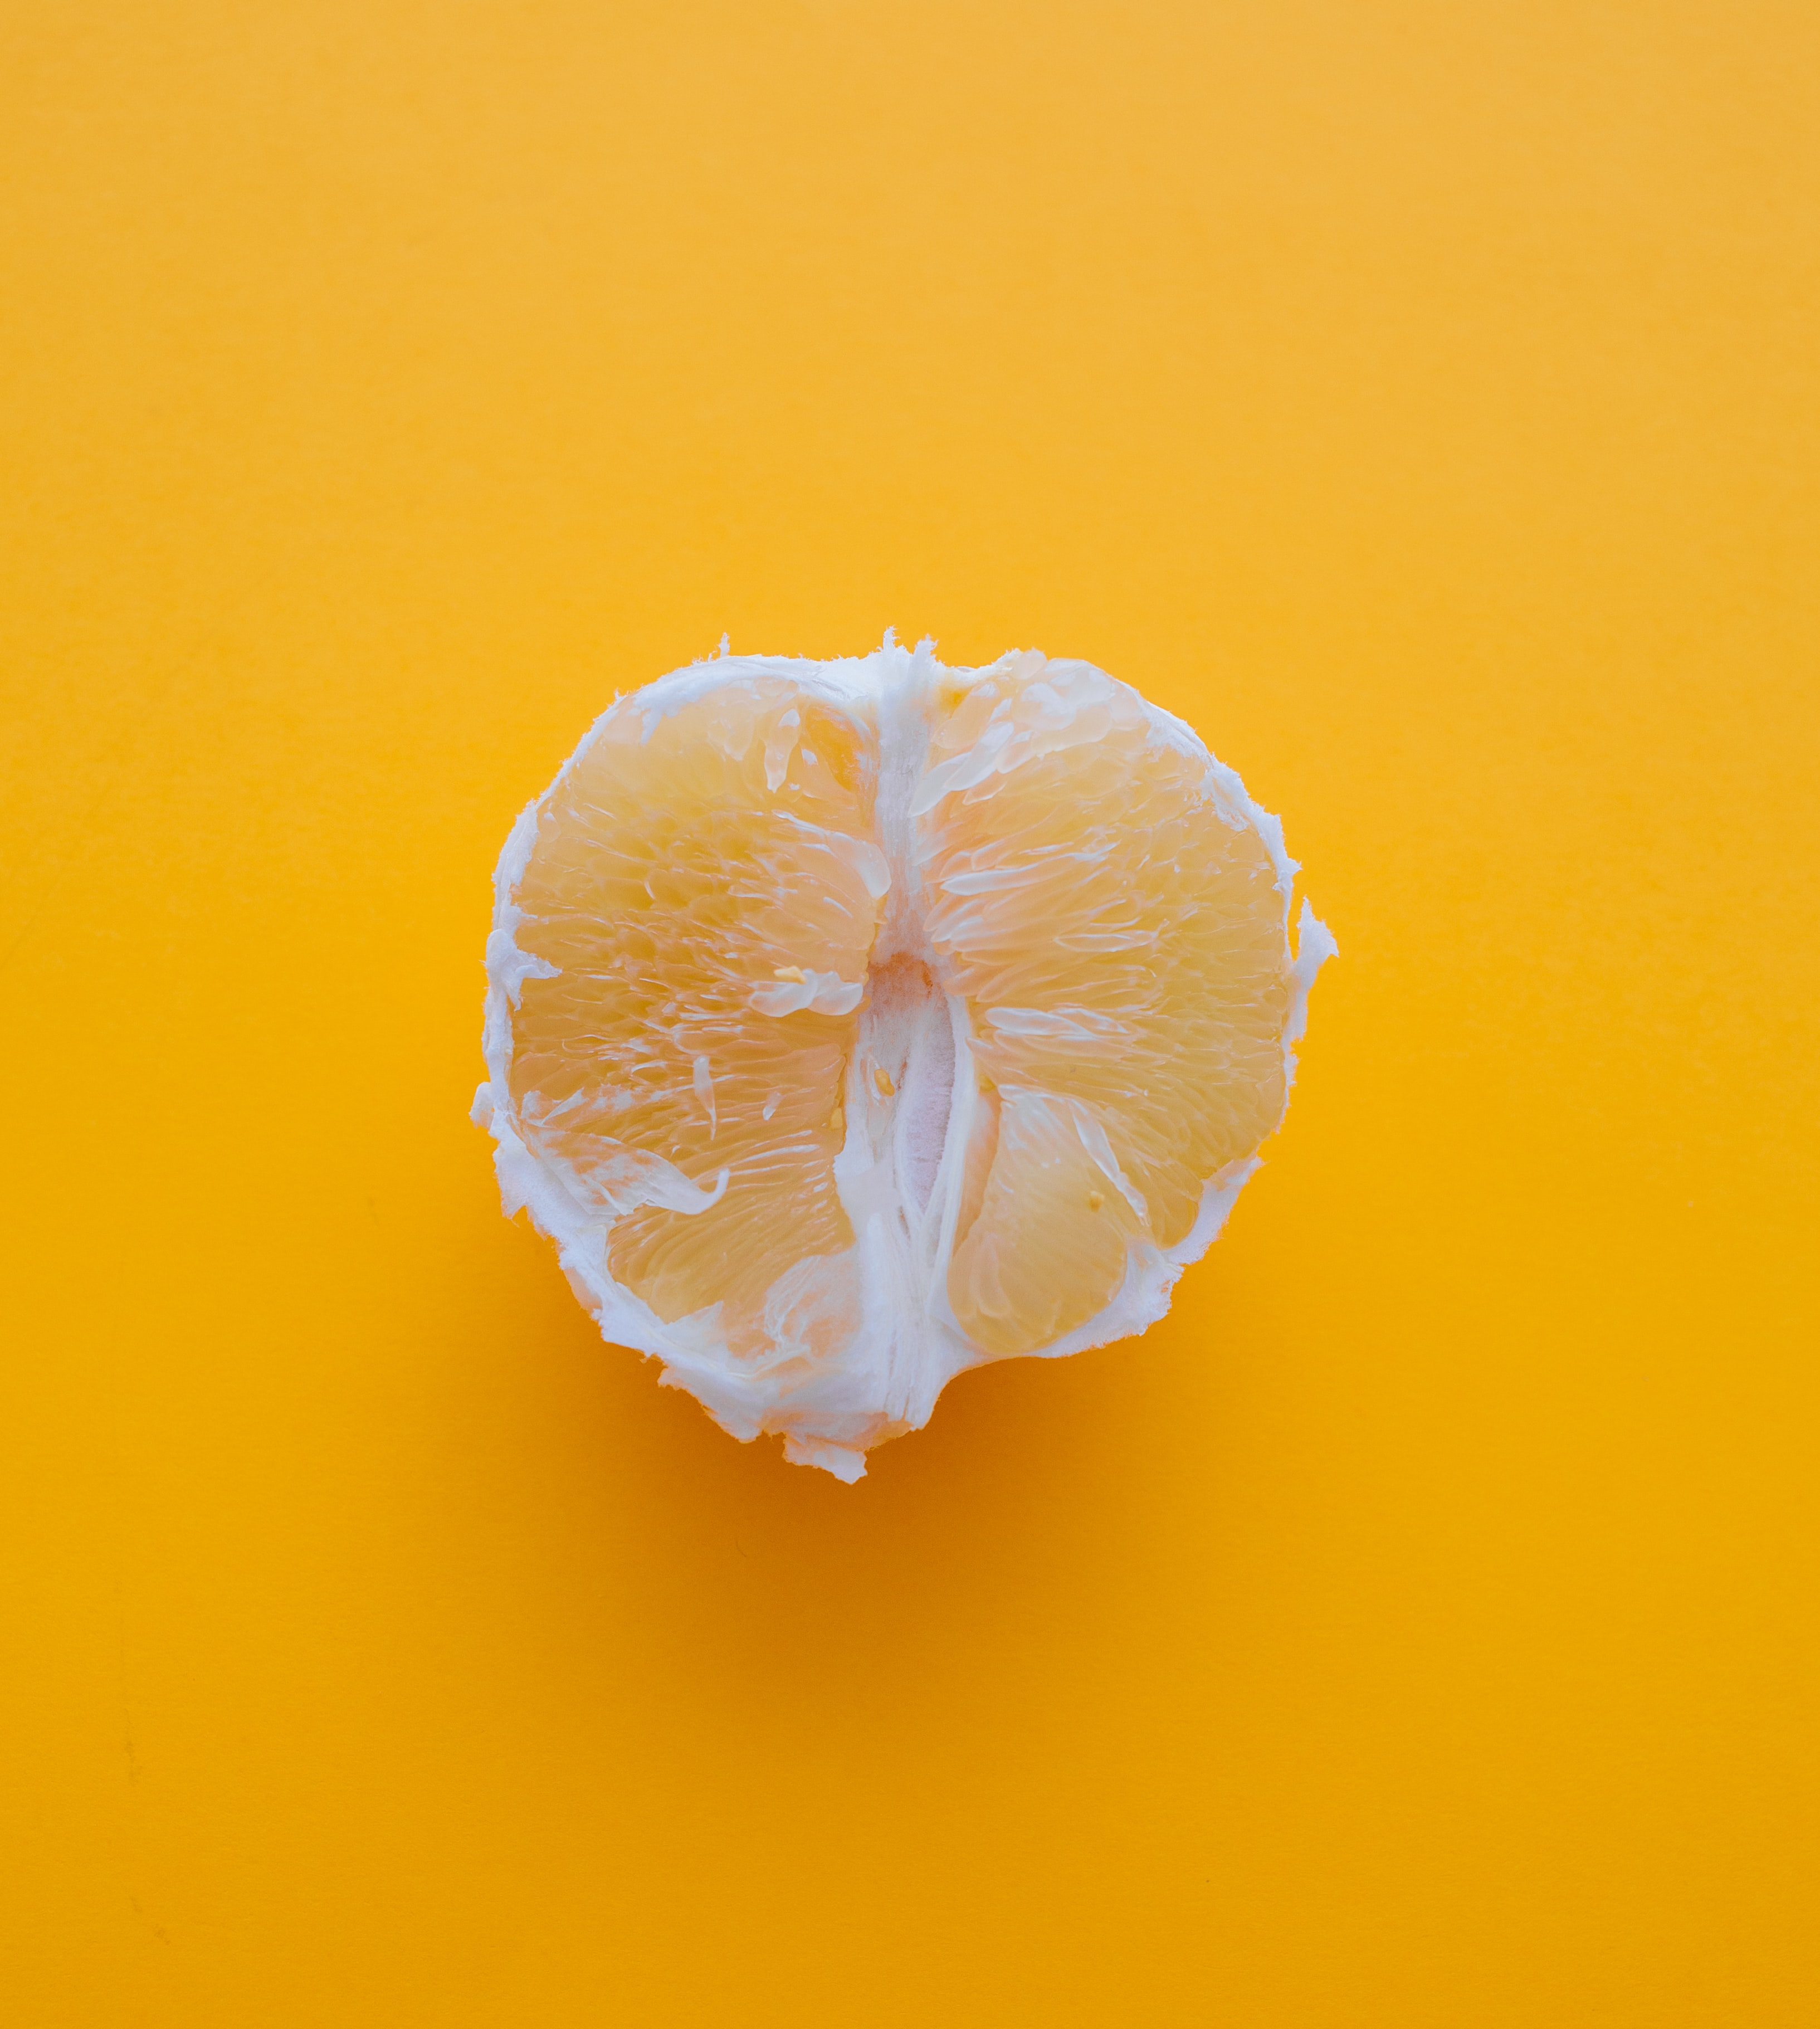 slice of citrus fruit